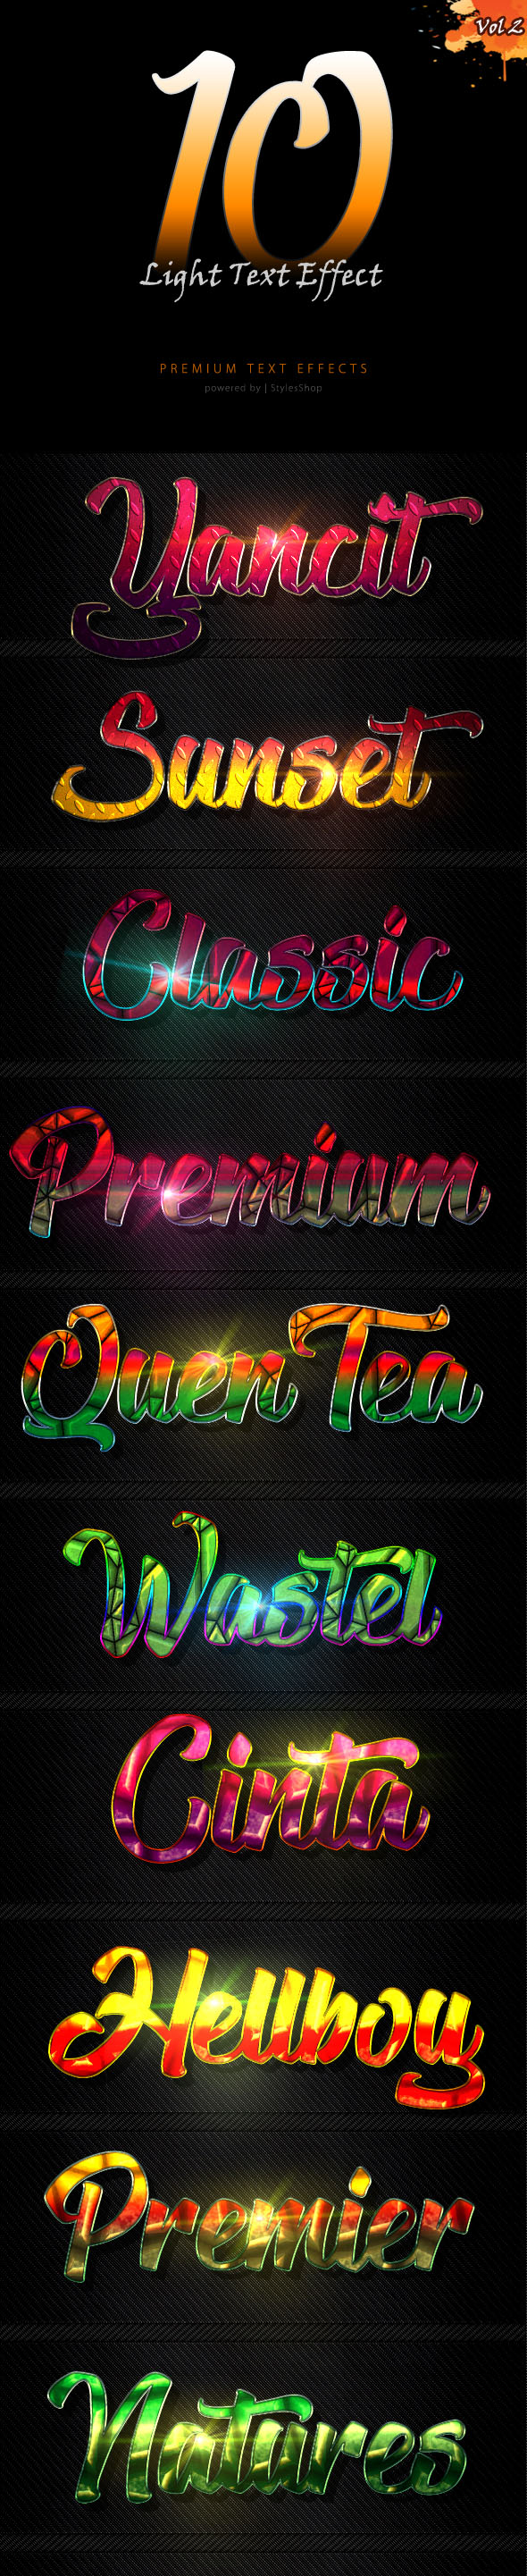 Light Text Effect Styles vol 2 - Text Effects Styles